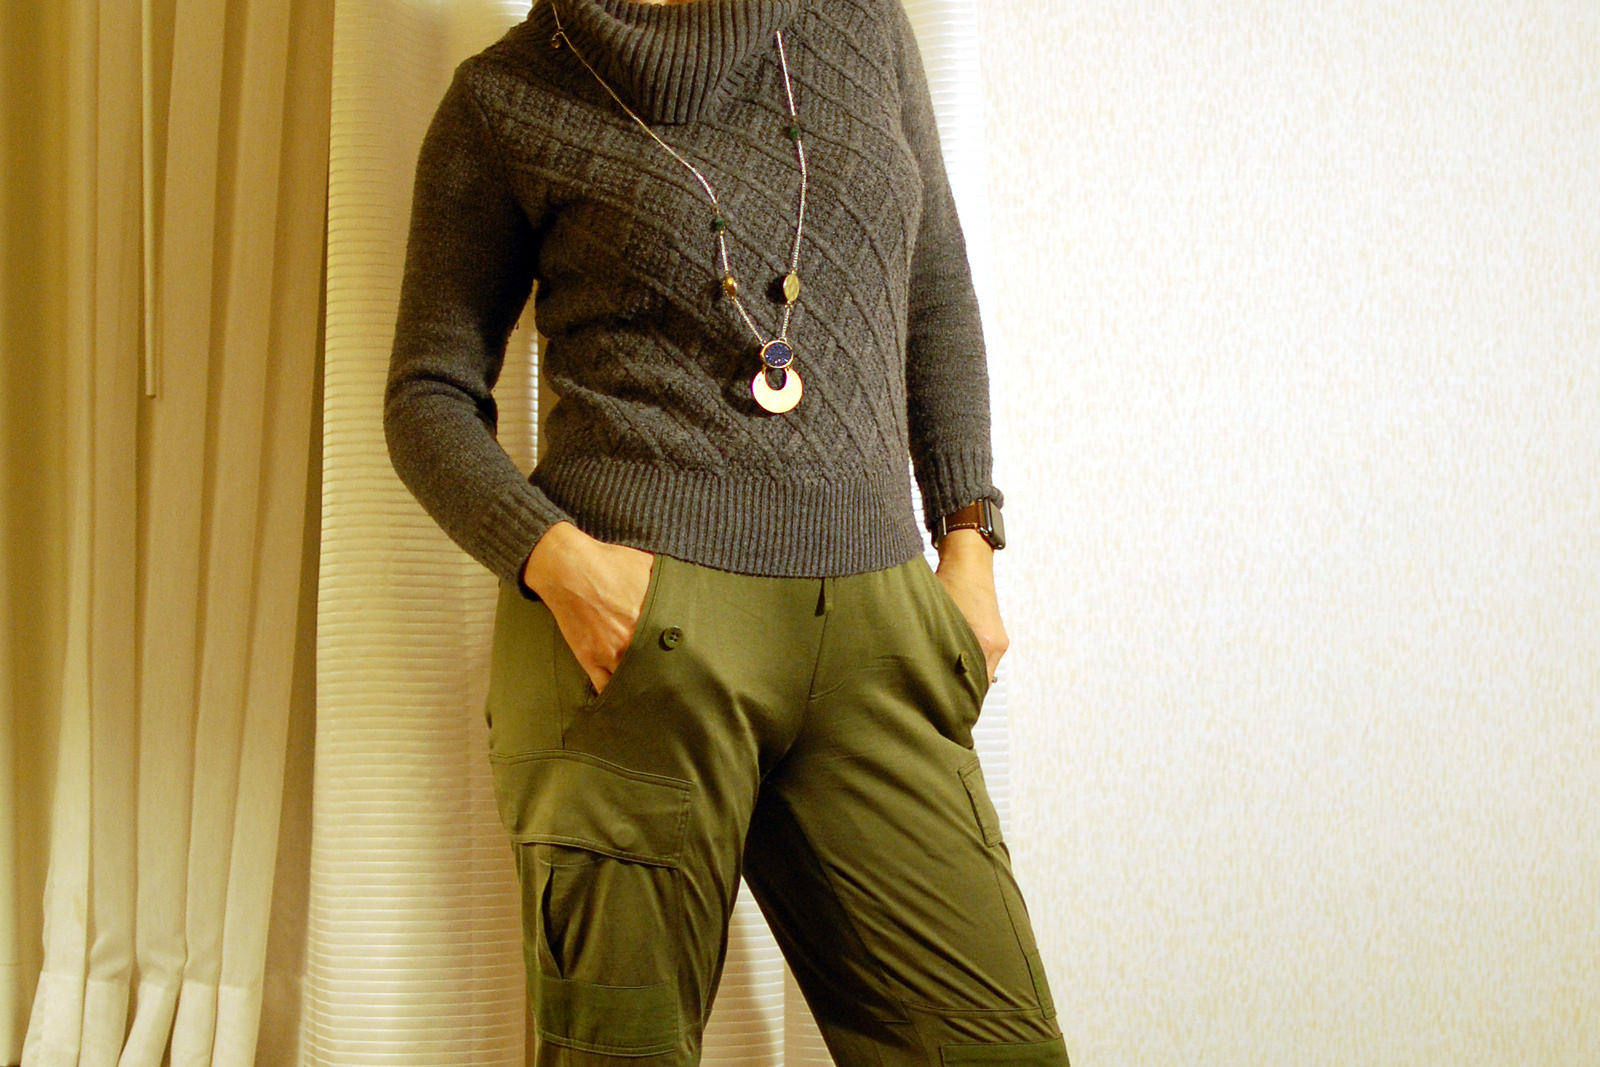 silk military joggers gray cowl neck sweater daily outfit blog ootd whatiwore2day